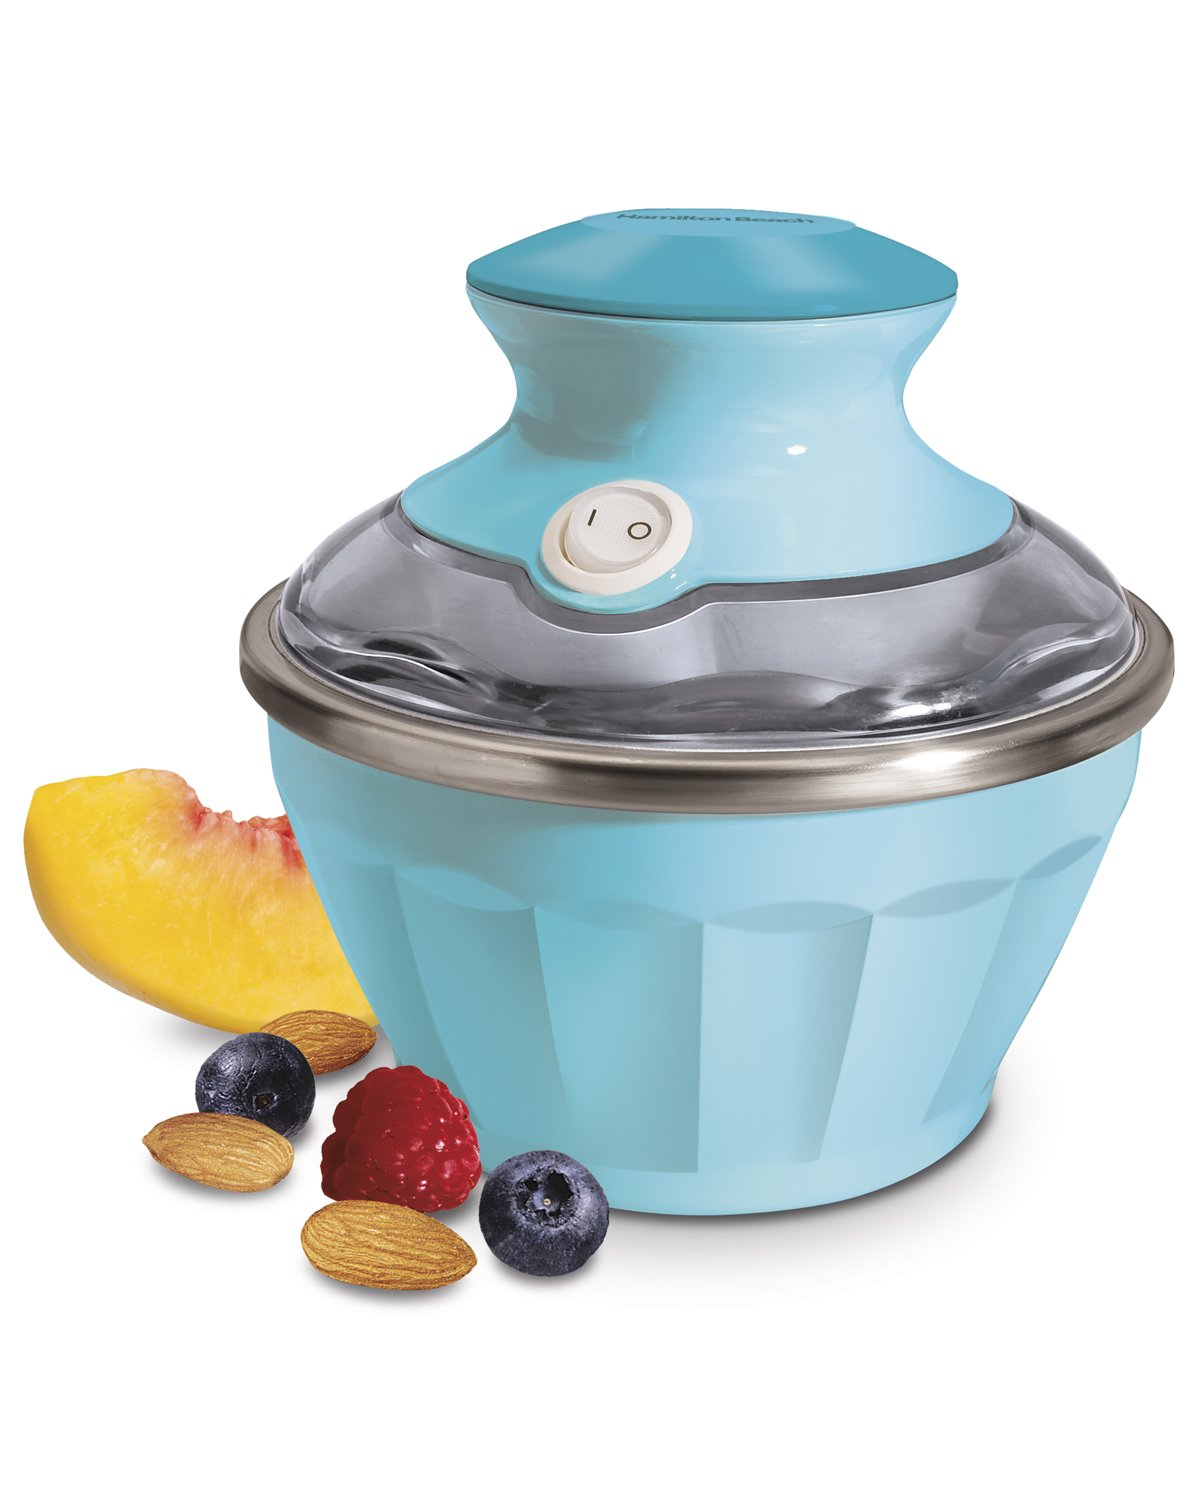 Hamilton Beach 68661 Half Pint Soft Serve Ice Cream Maker, Blue